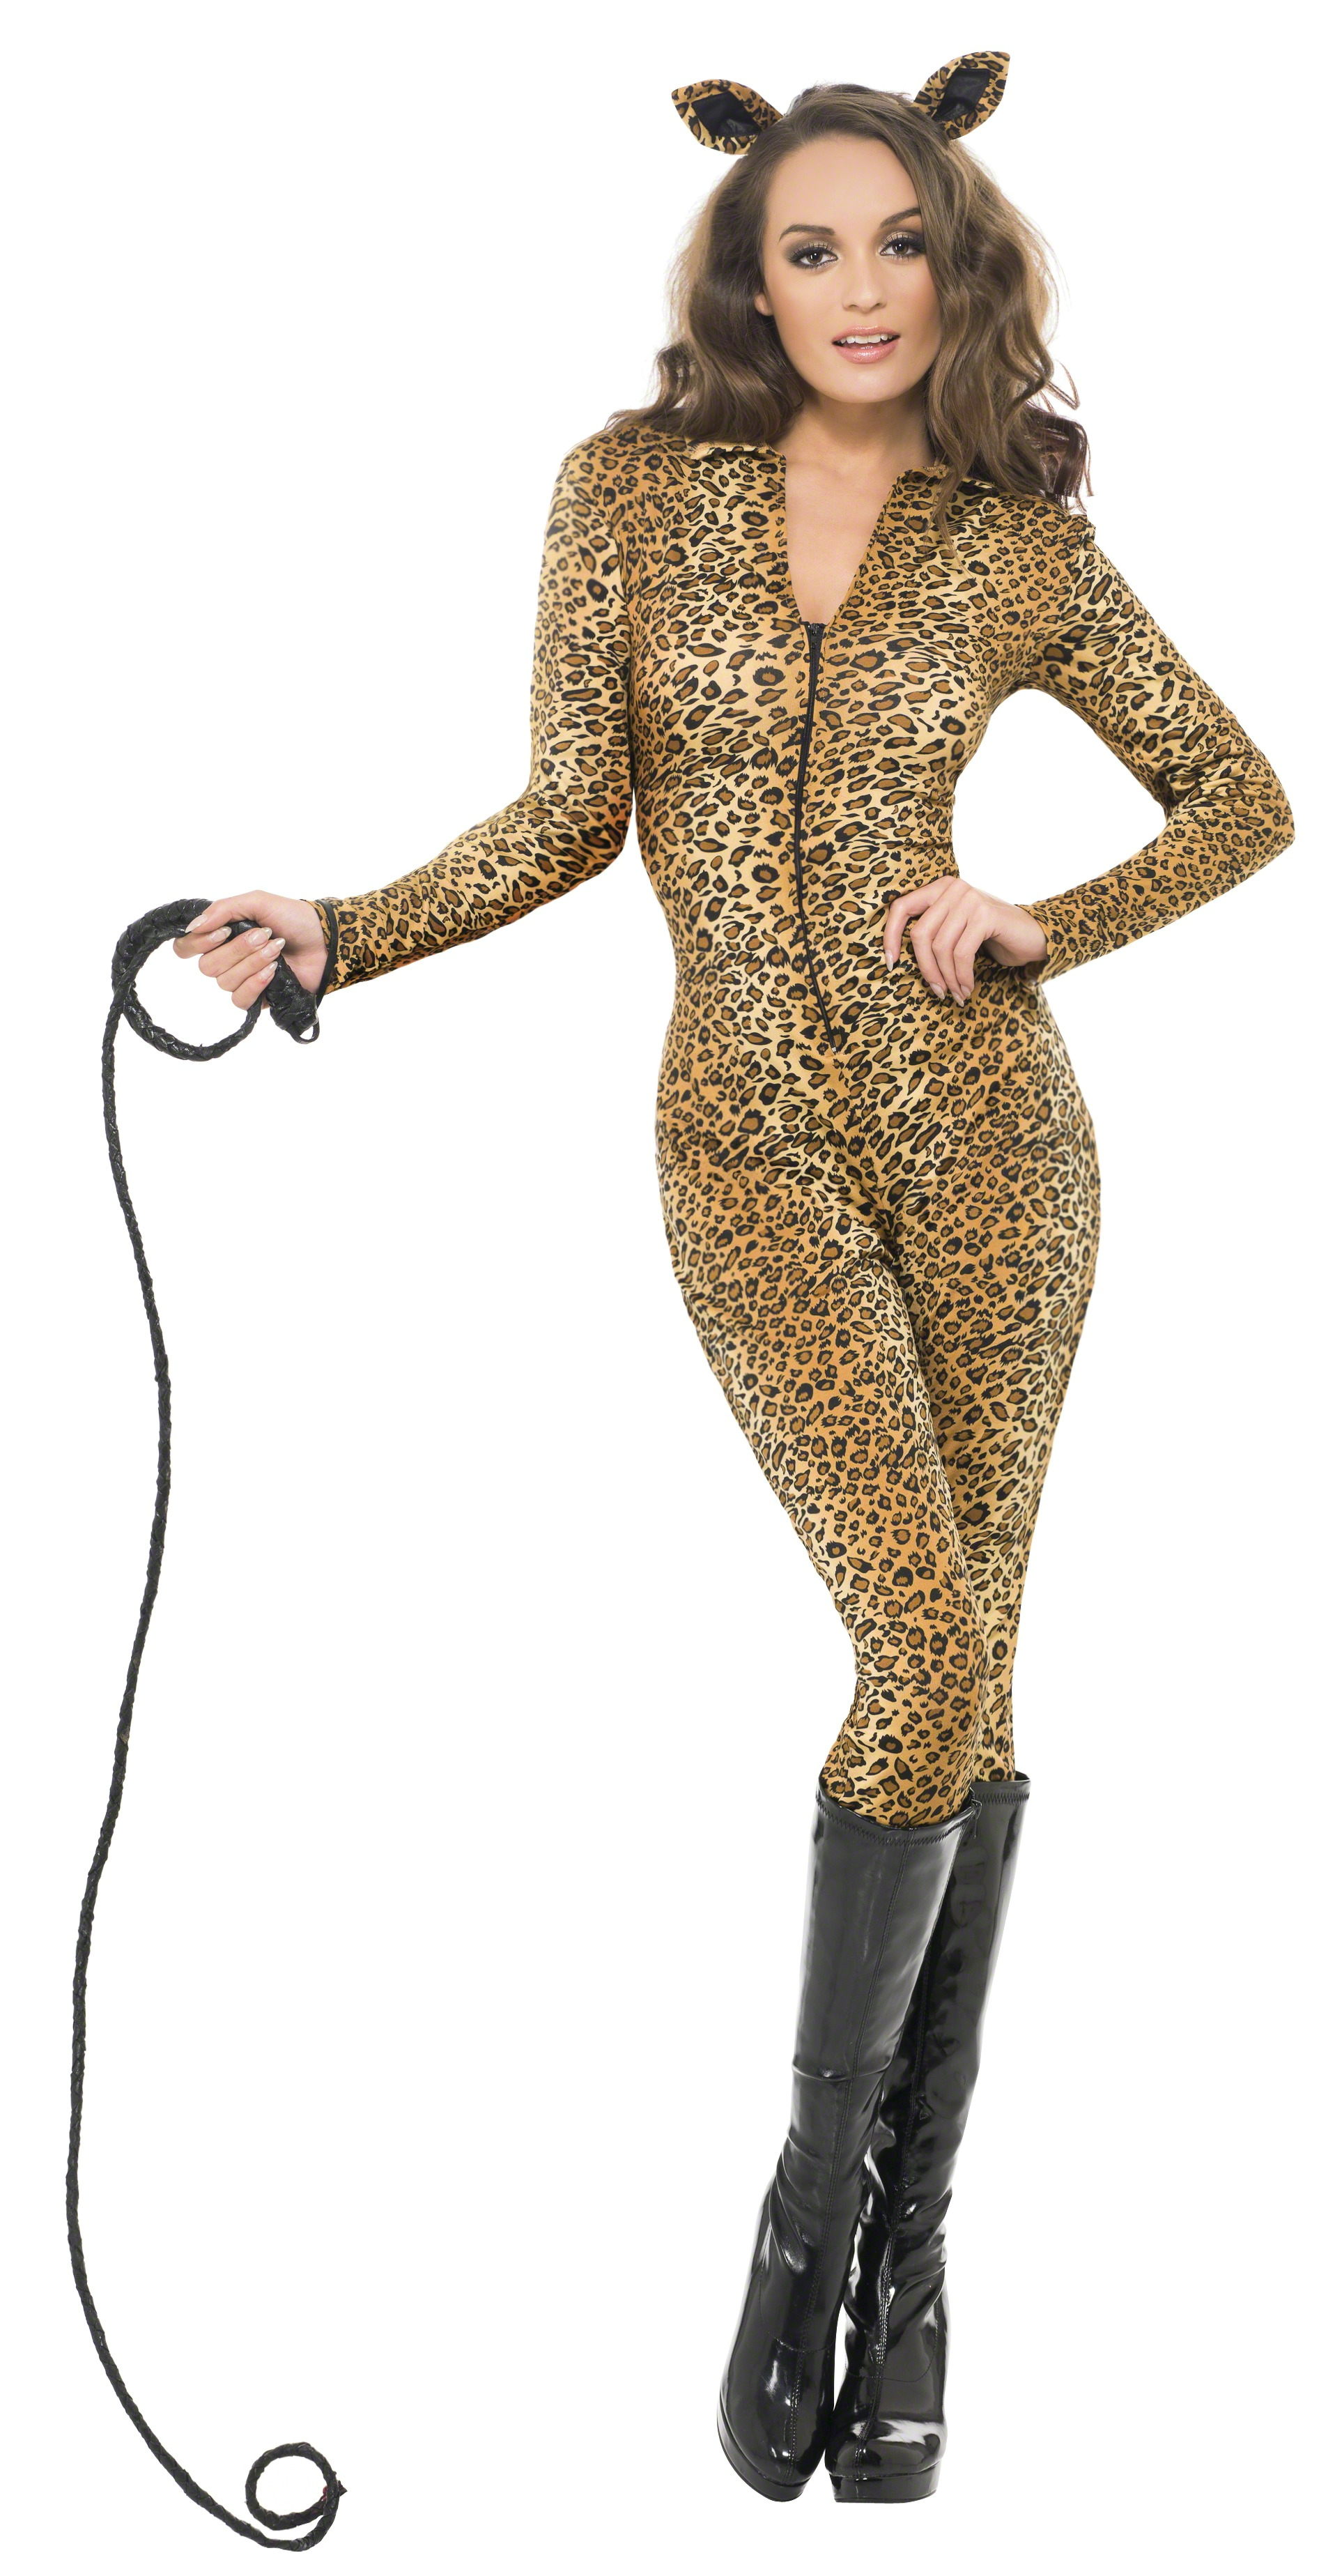 Rule over the animal kingdom in this Leopard Princess costume featuring a romper with a plunging neckline, a lace-up front closure, long sleeves with faux fur leopard cuffs, a cheeky cut back with a faux fur trim, an attached furry hood with leopard ears, and a removable tail.